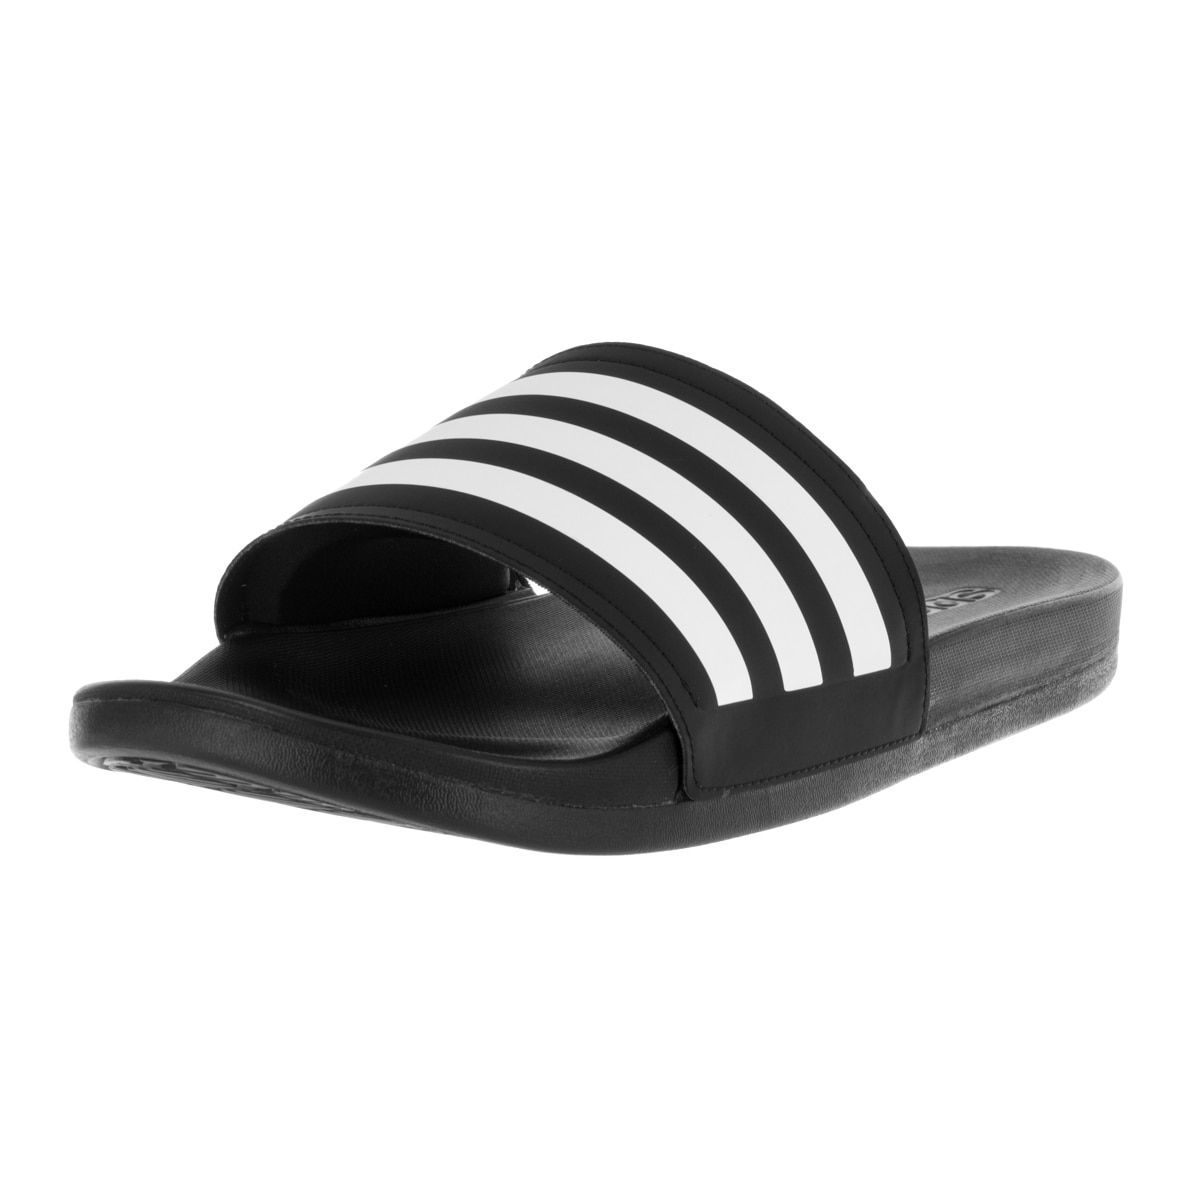 06cd07fea002 Adidas Men s Adilette CF Ultra C Black Sandal